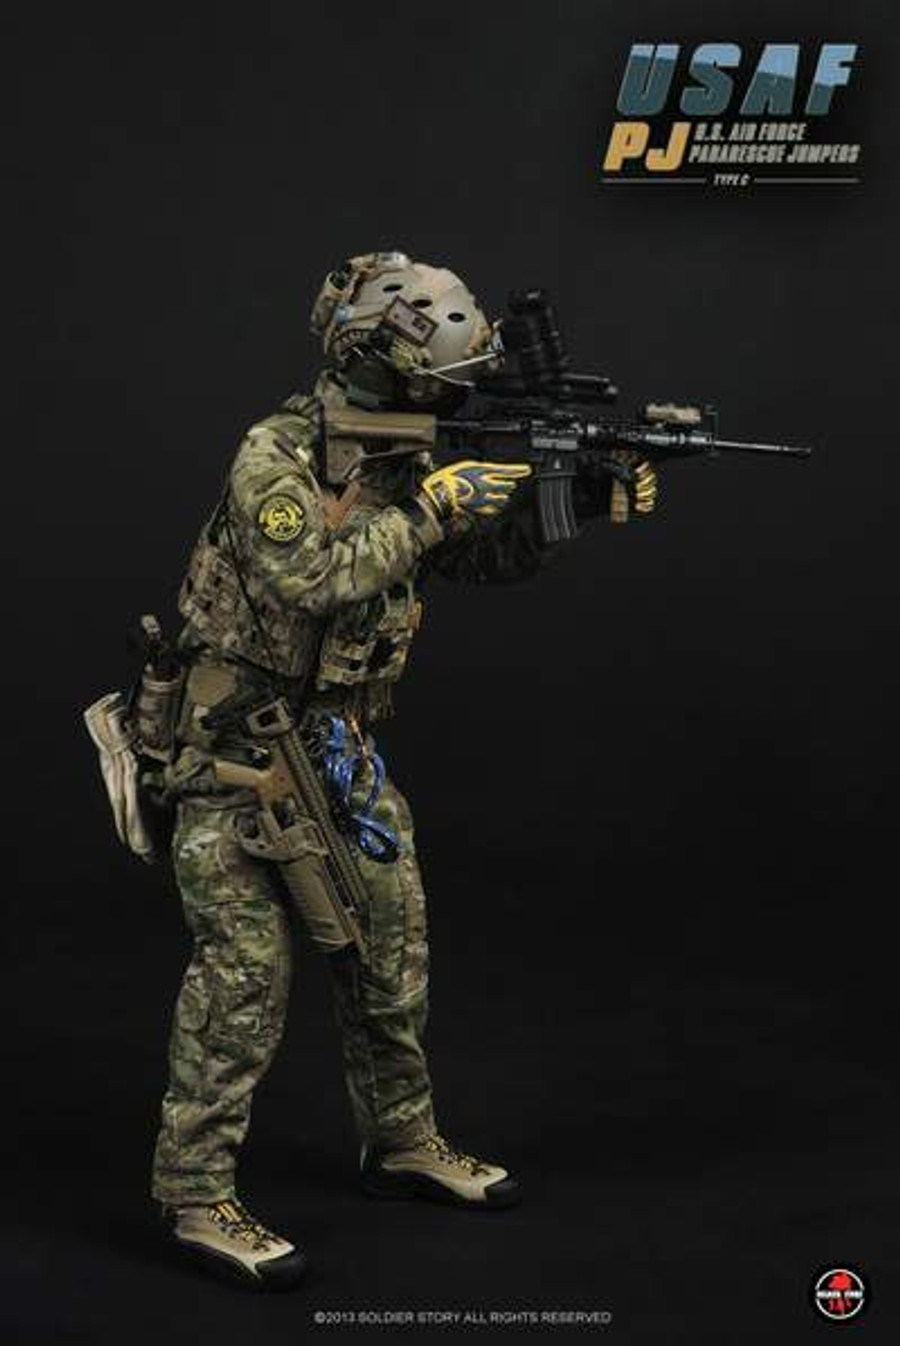 Soldier Story - USAF PJ Air Force Pararescue Jumpers Type C